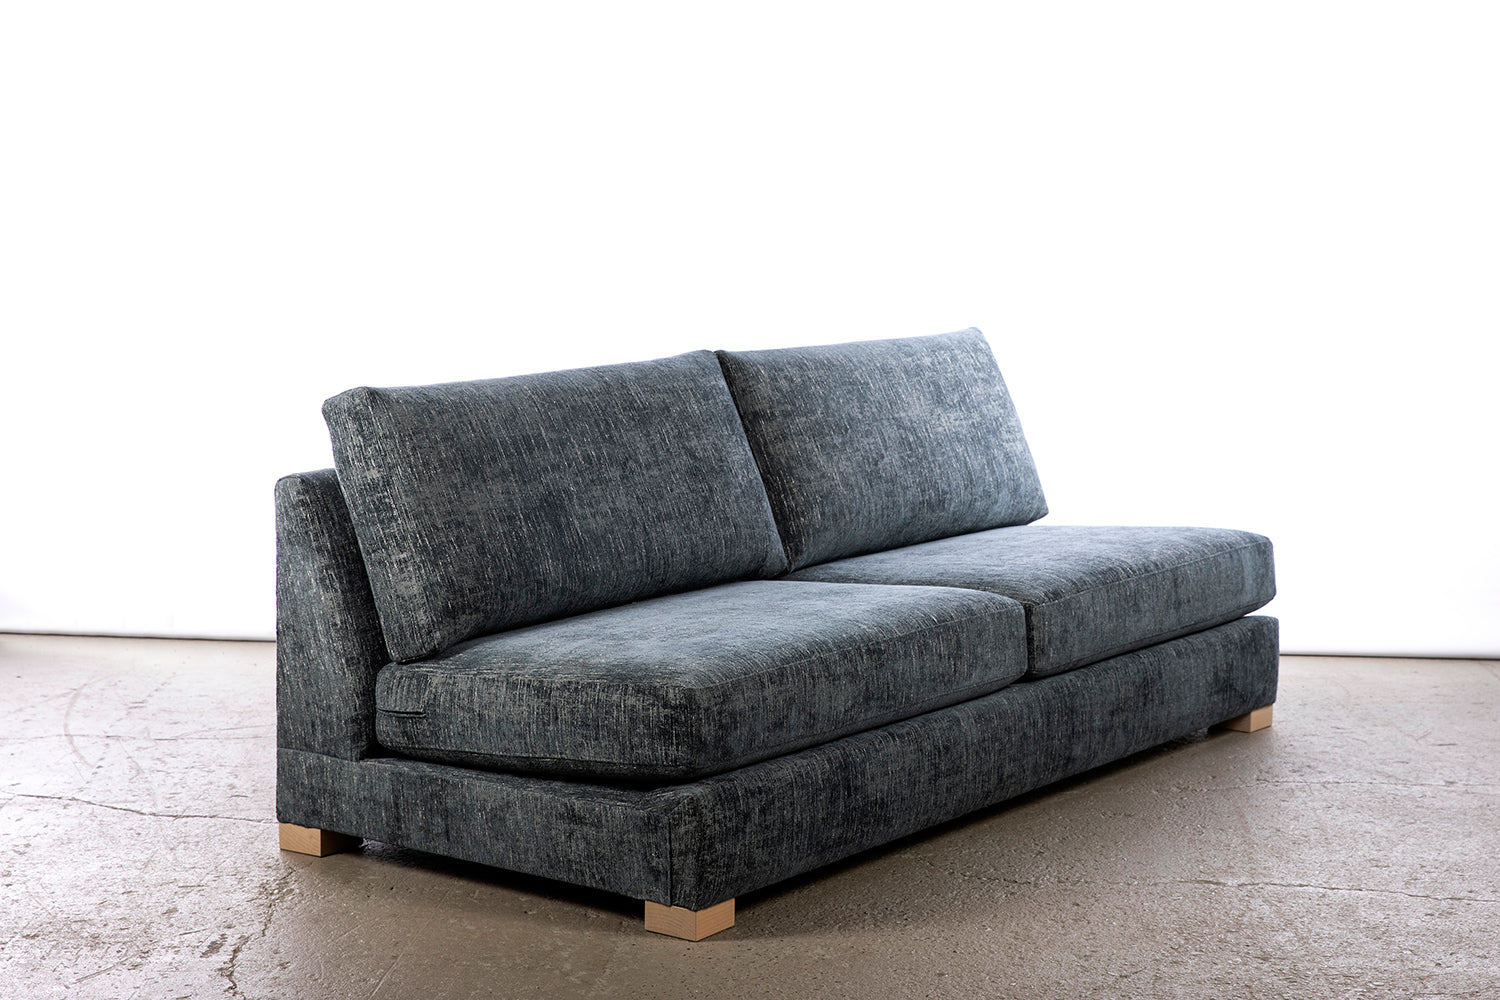 ffabb coasty slim - armless sofa in riptide chenille